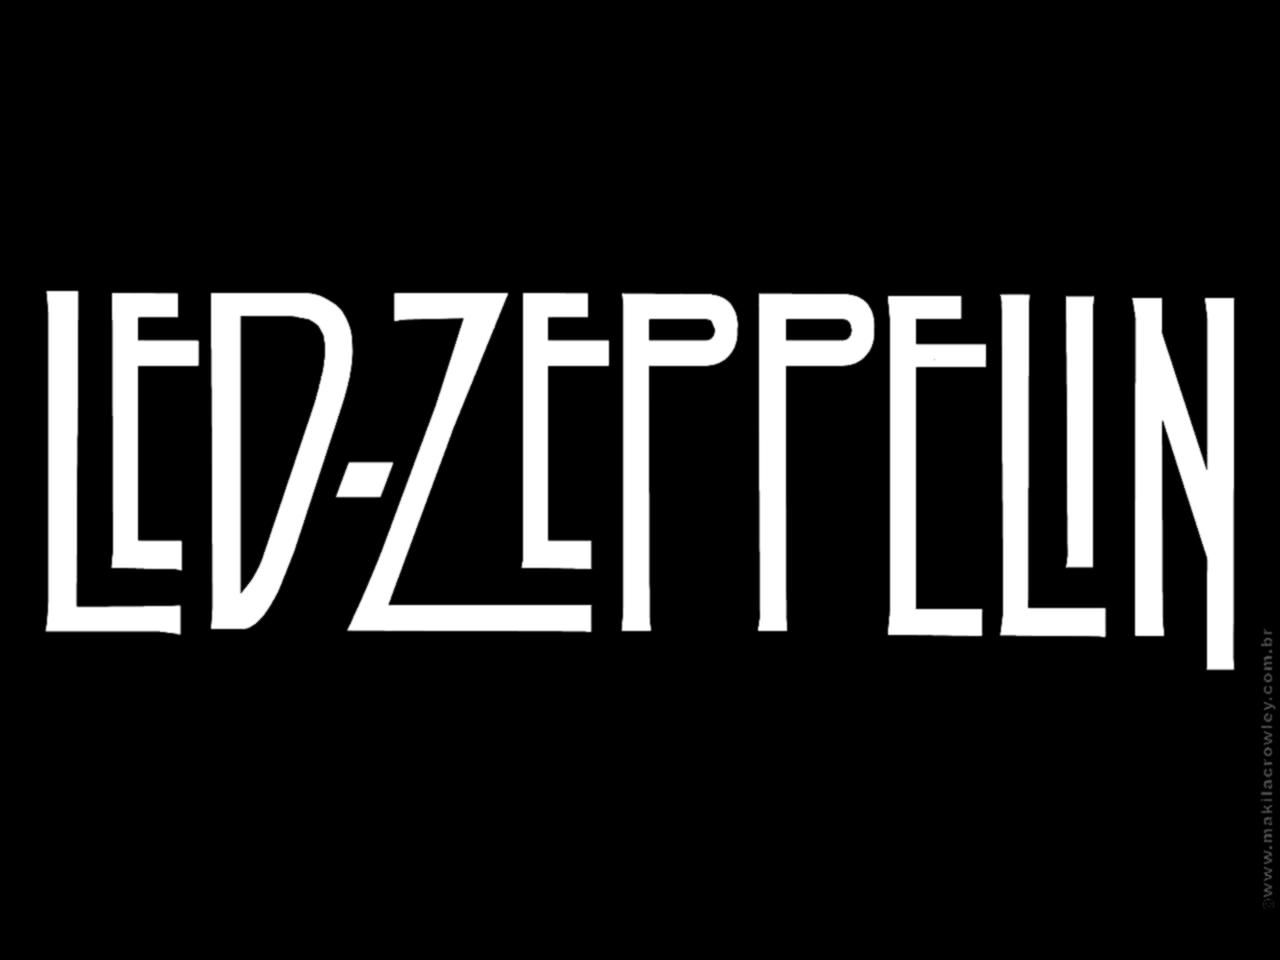 serif font But it is not consistent in size Some letters submitcapsAll caps sans serif font But it is not consistent in size Some letters submitcaps Which Led Zeppelin so...